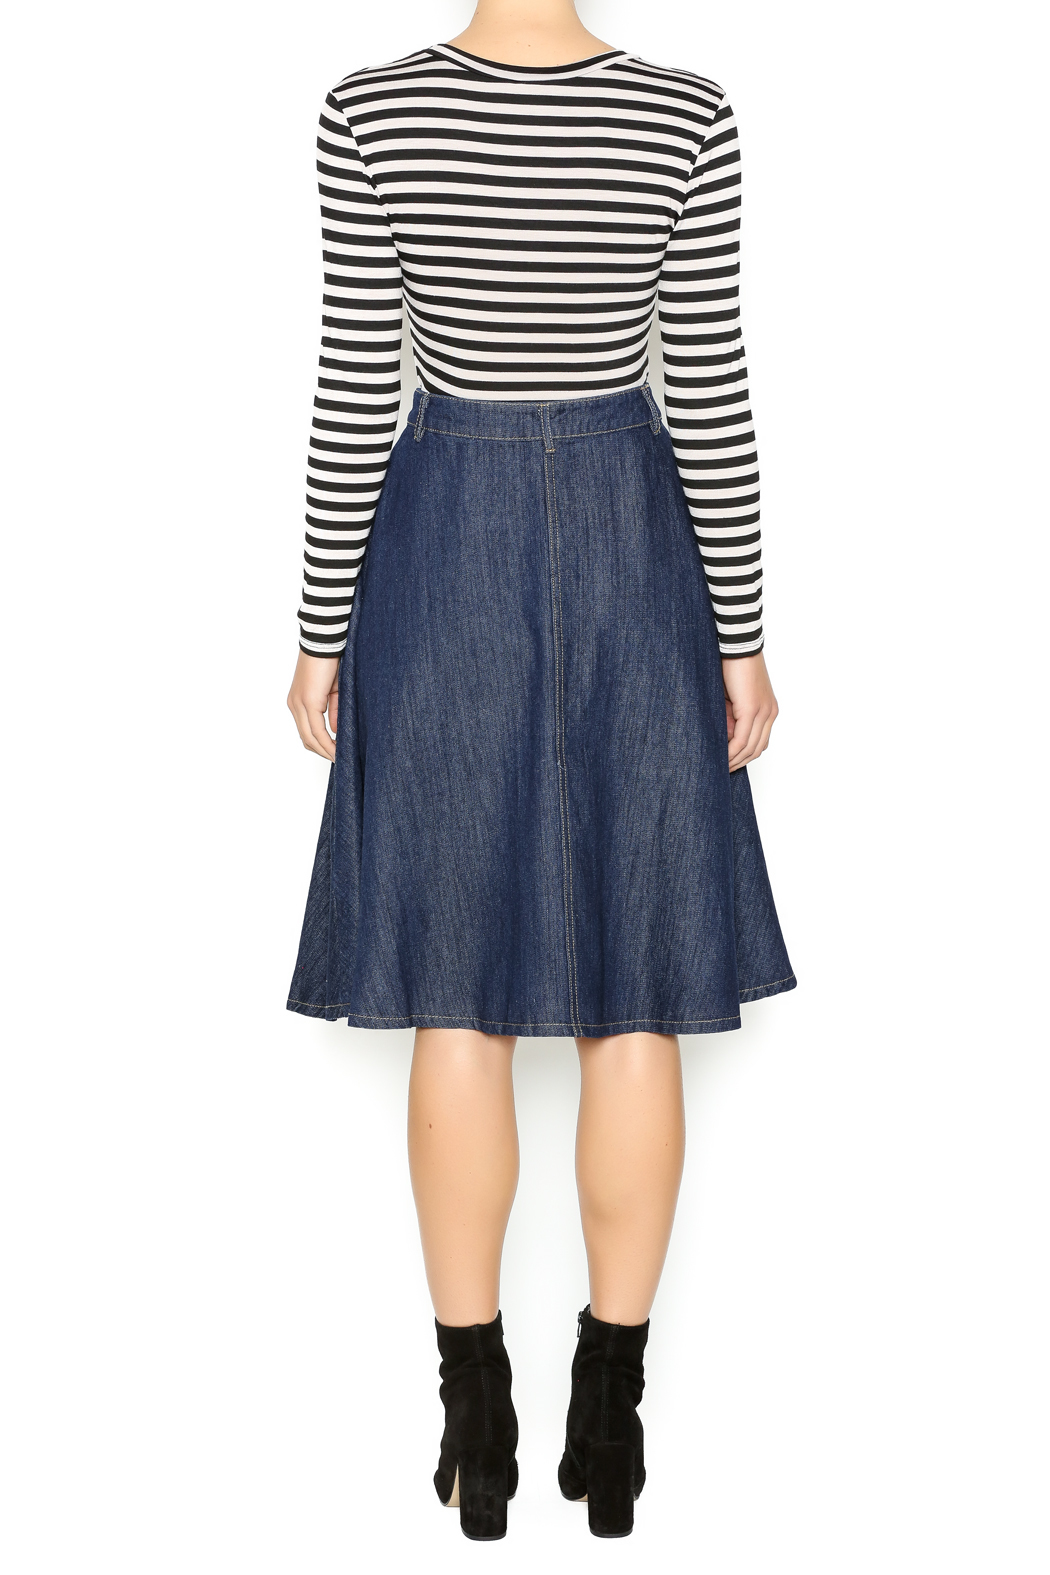 in style strong denim midi skirt from by myths of